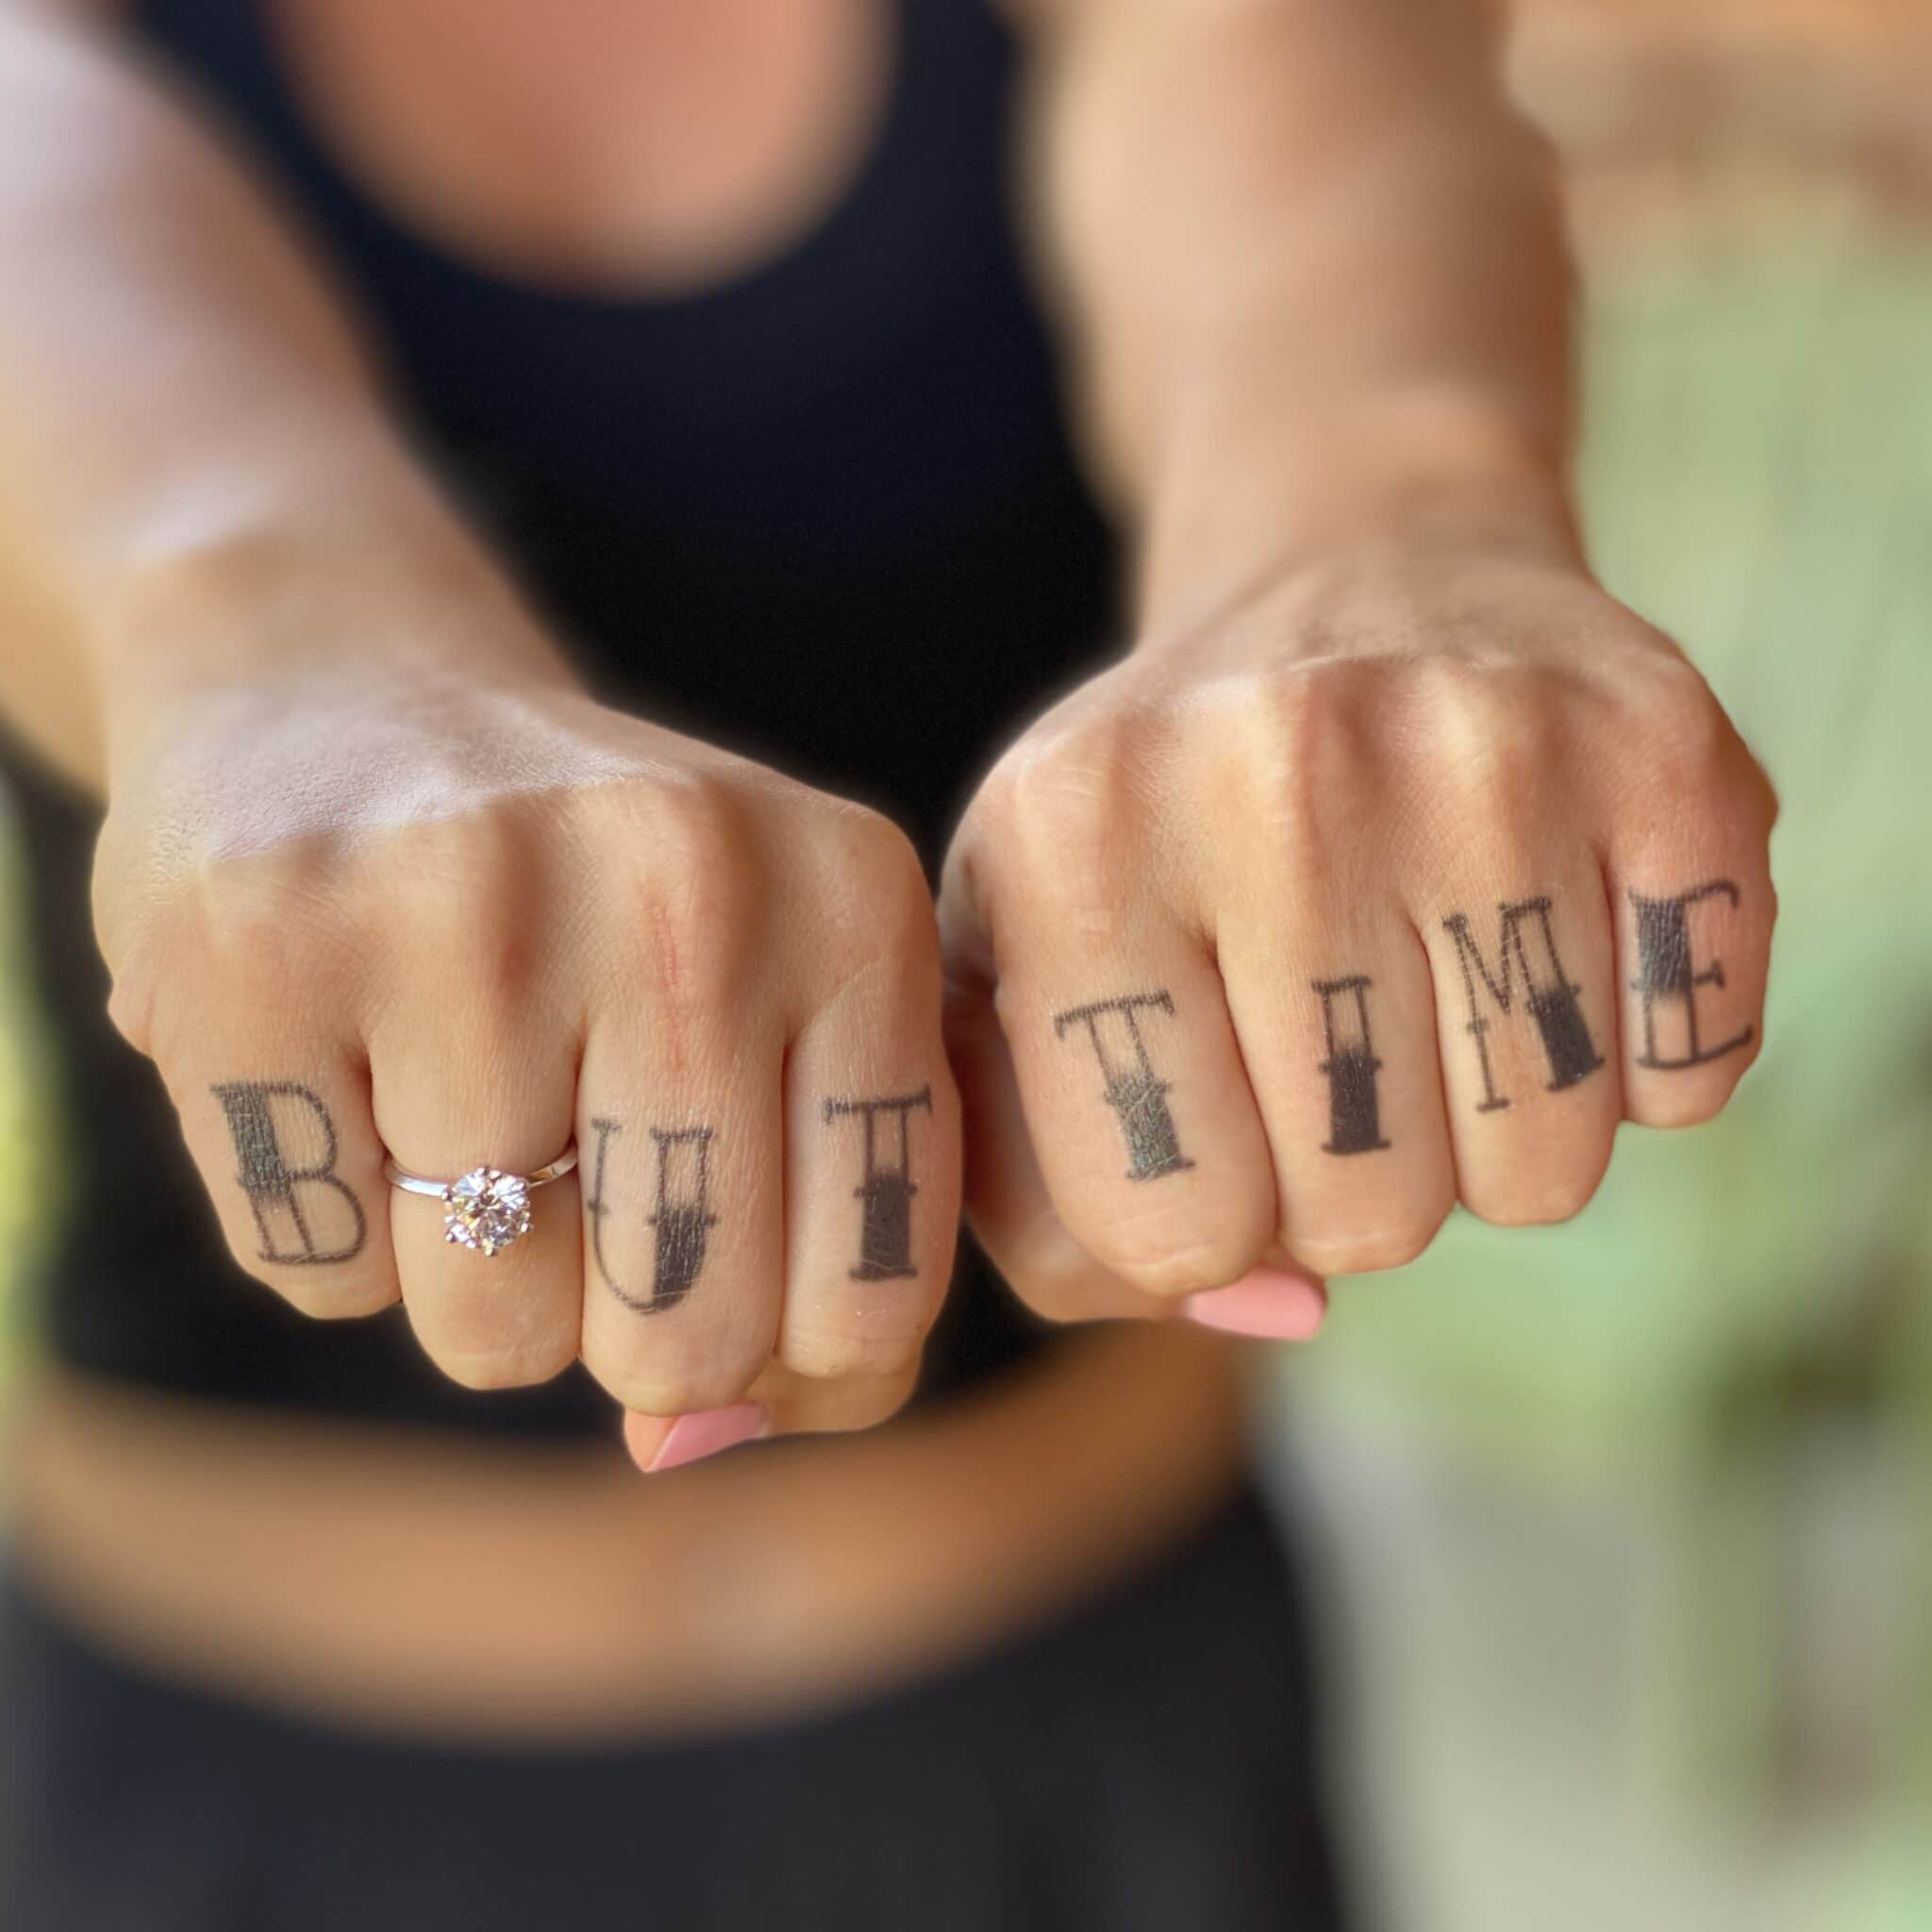 close up of fists held out in front of girl with letters B U T T I M E and the engagement ring in between the B and U to spell out bout time